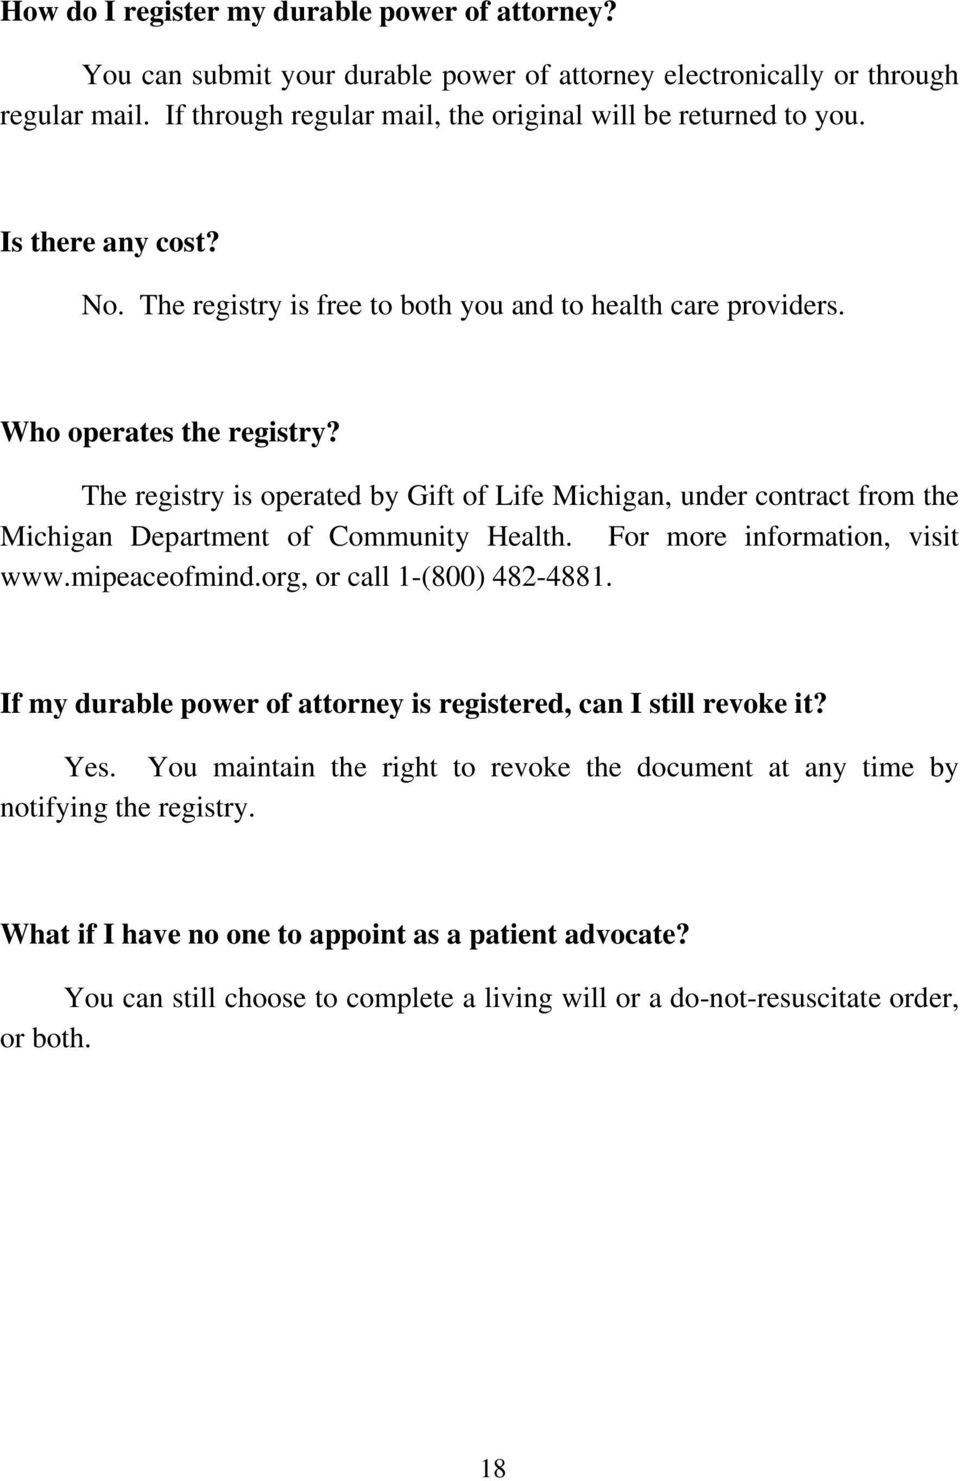 The registry is operated by Gift of Life Michigan, under contract from the Michigan Department of Community Health. For more information, visit www.mipeaceofmind.org, or call 1-(800) 482-4881.